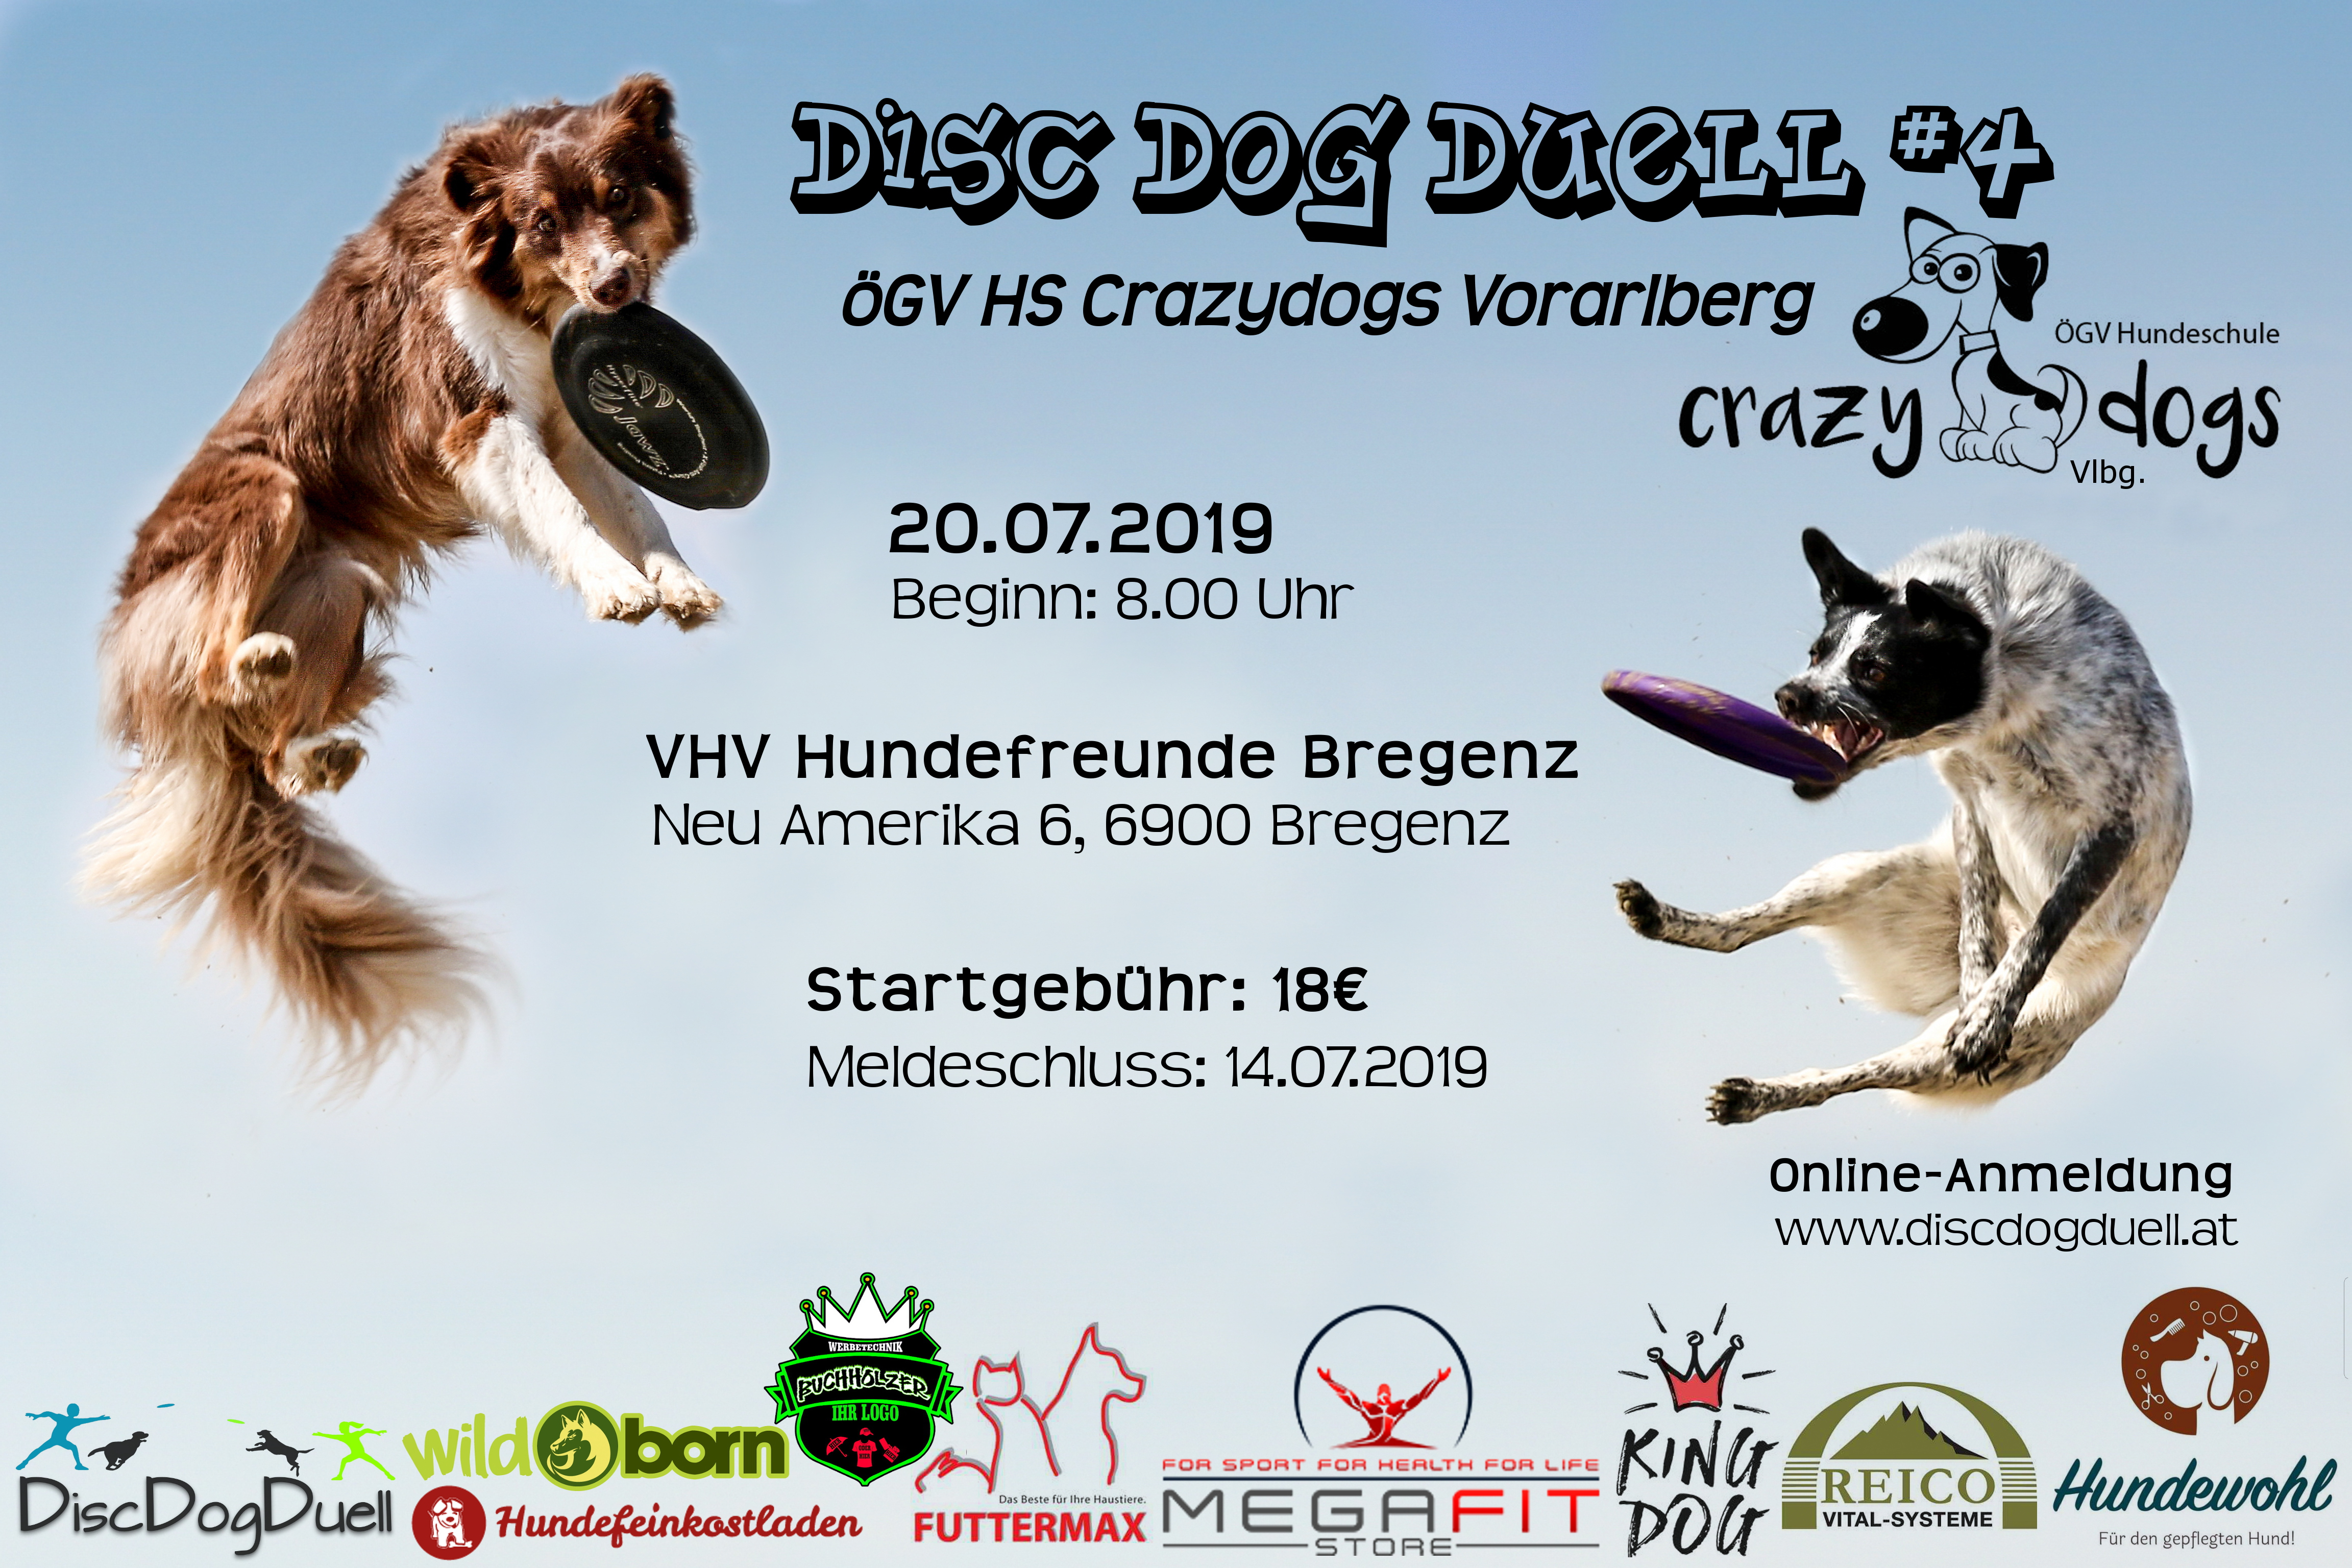 Dogfrisbee Turnier (DDD-Series) in Bregenz